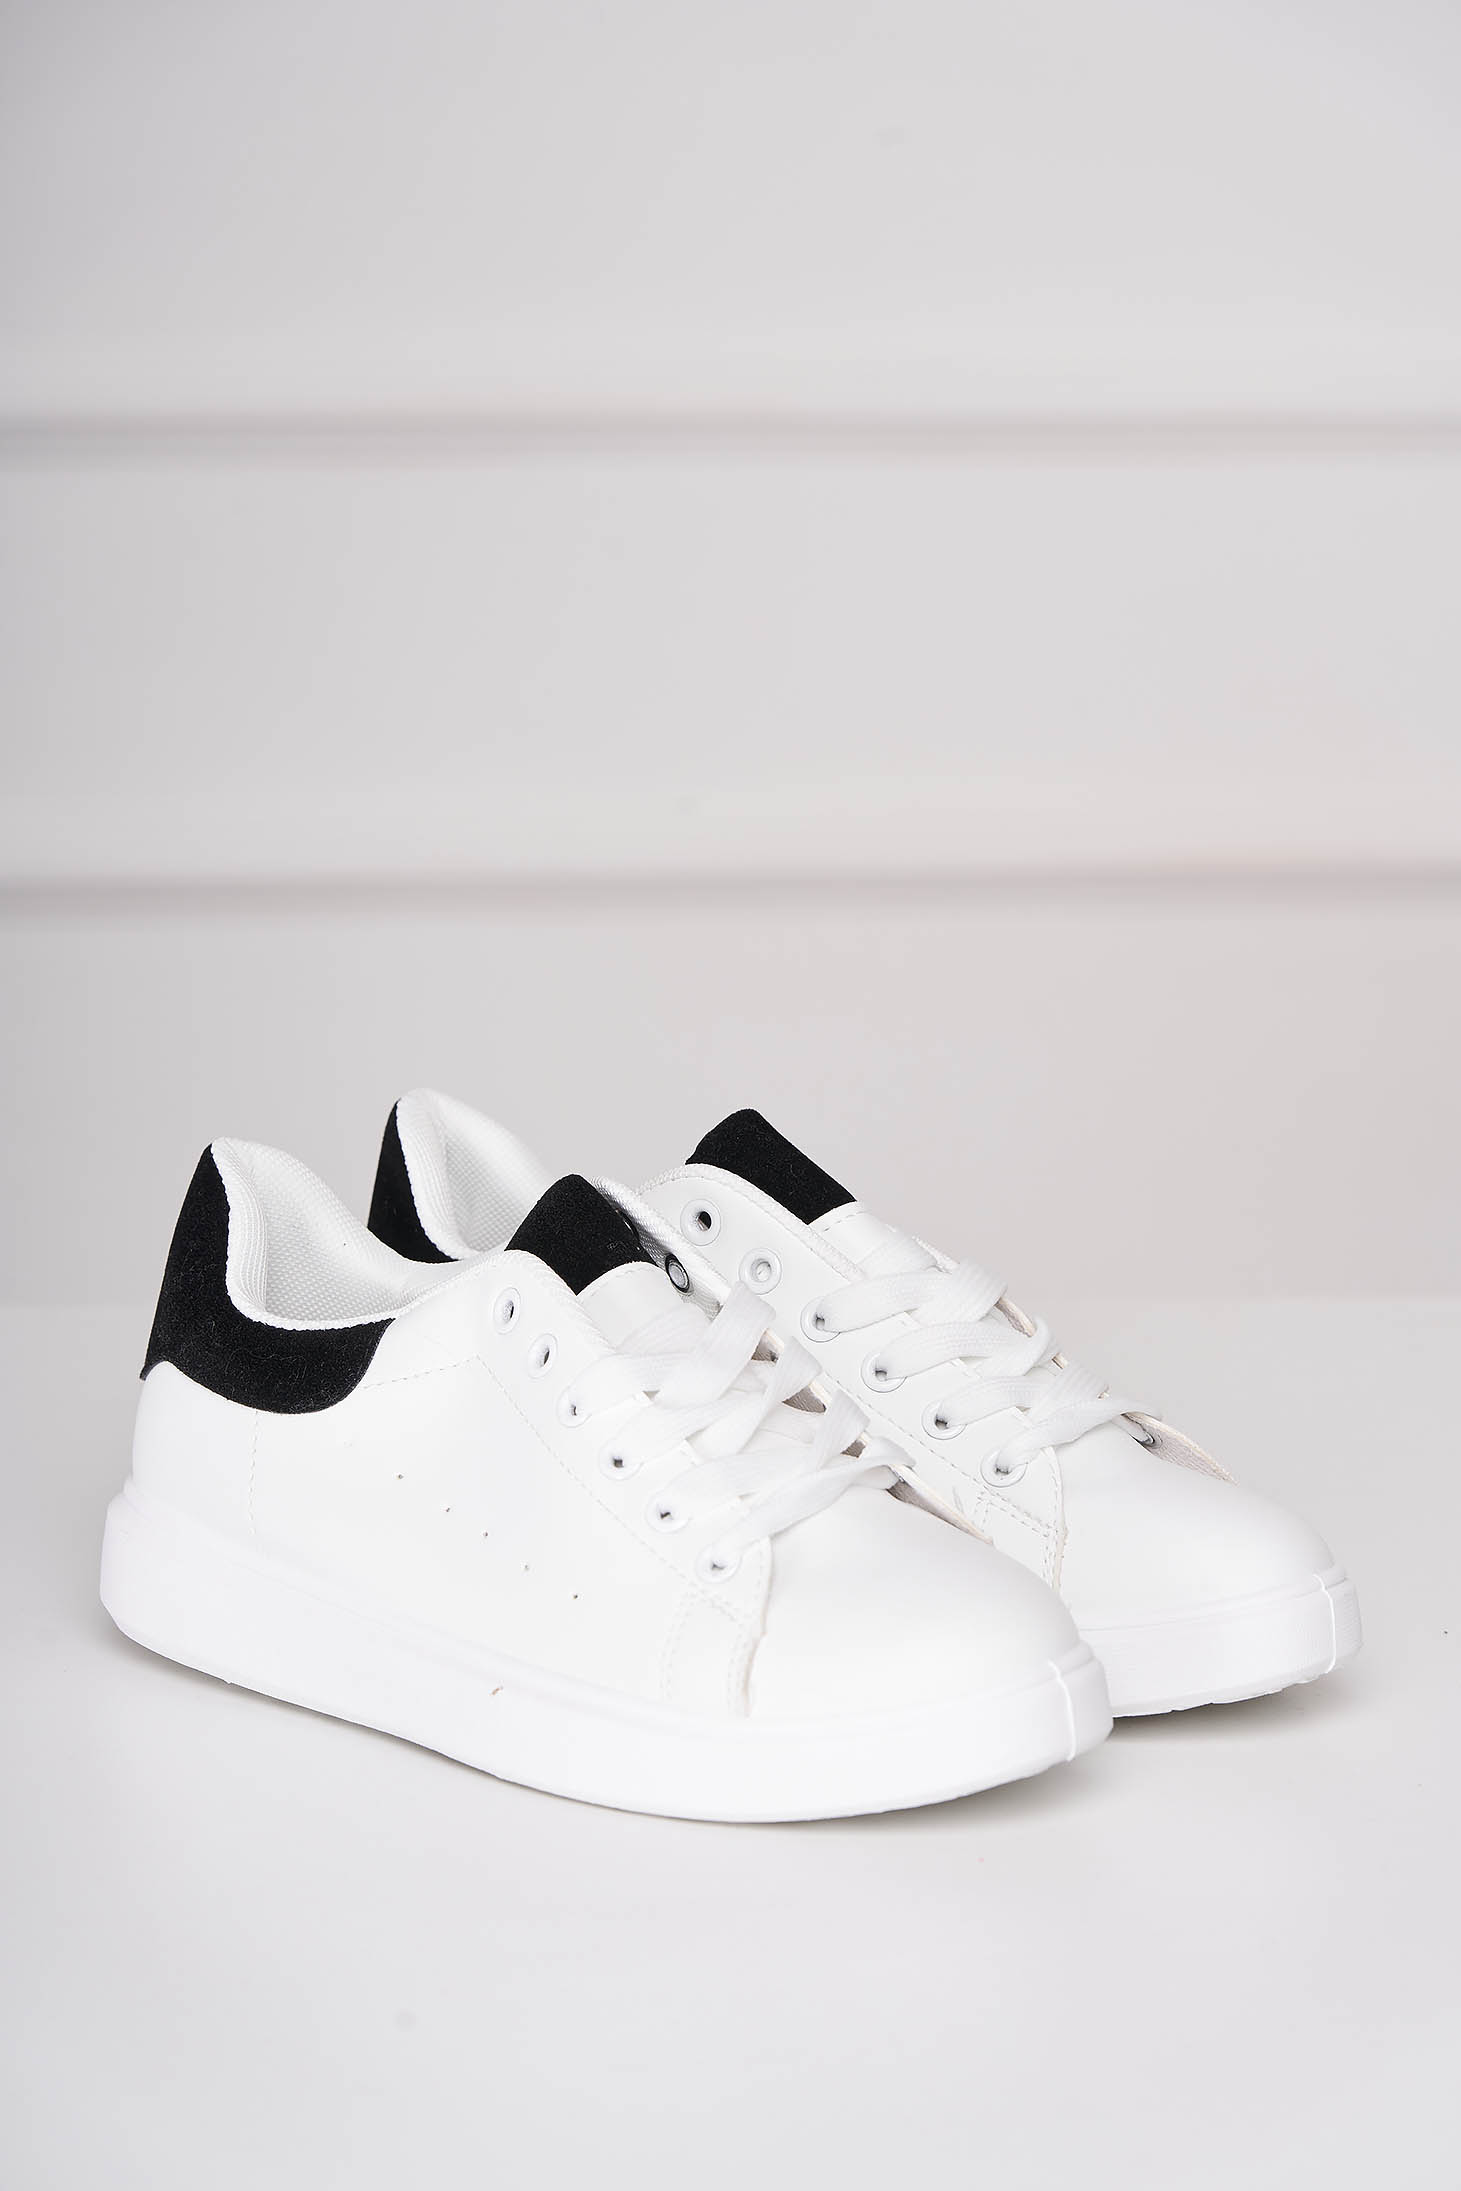 Black sneakers casual from ecological leather with lace